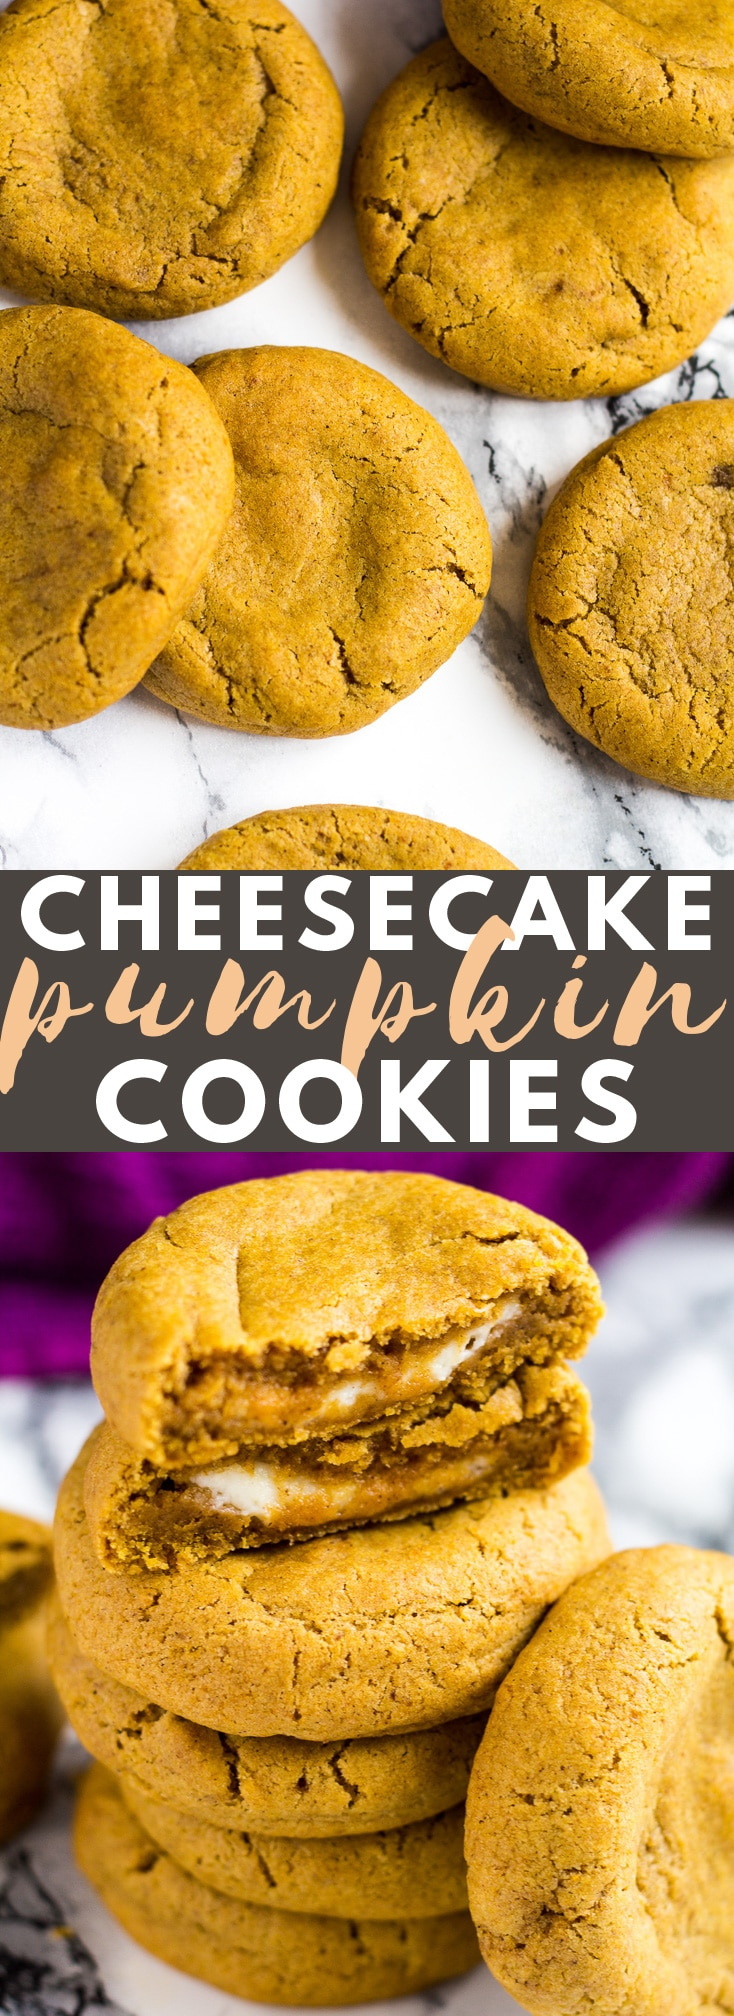 Cheesecake Stuffed Pumpkin Cookies - Deliciously soft and chewy pumpkin cookies that are perfectly spiced, and stuffed with a cheesecake layer! #cheesecake #pumpkin #cookies #cookierecipes